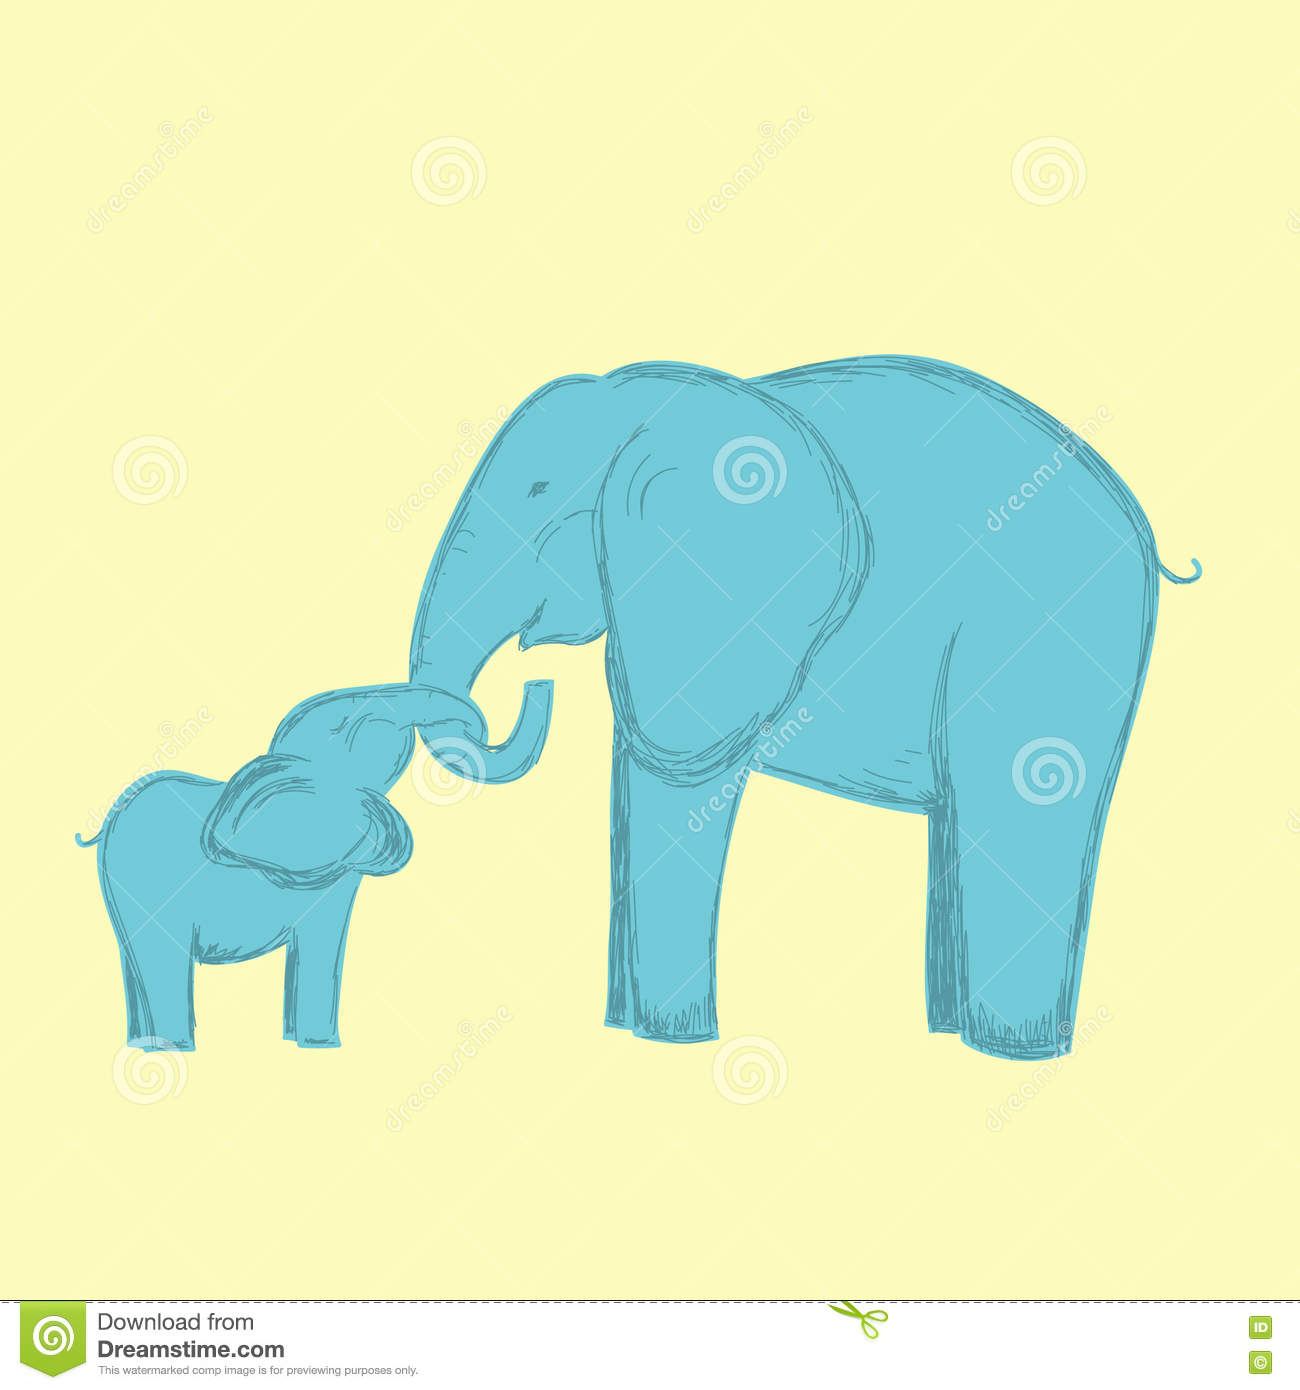 Child support cartoons illustrations vector stock for Elephant heart trunk